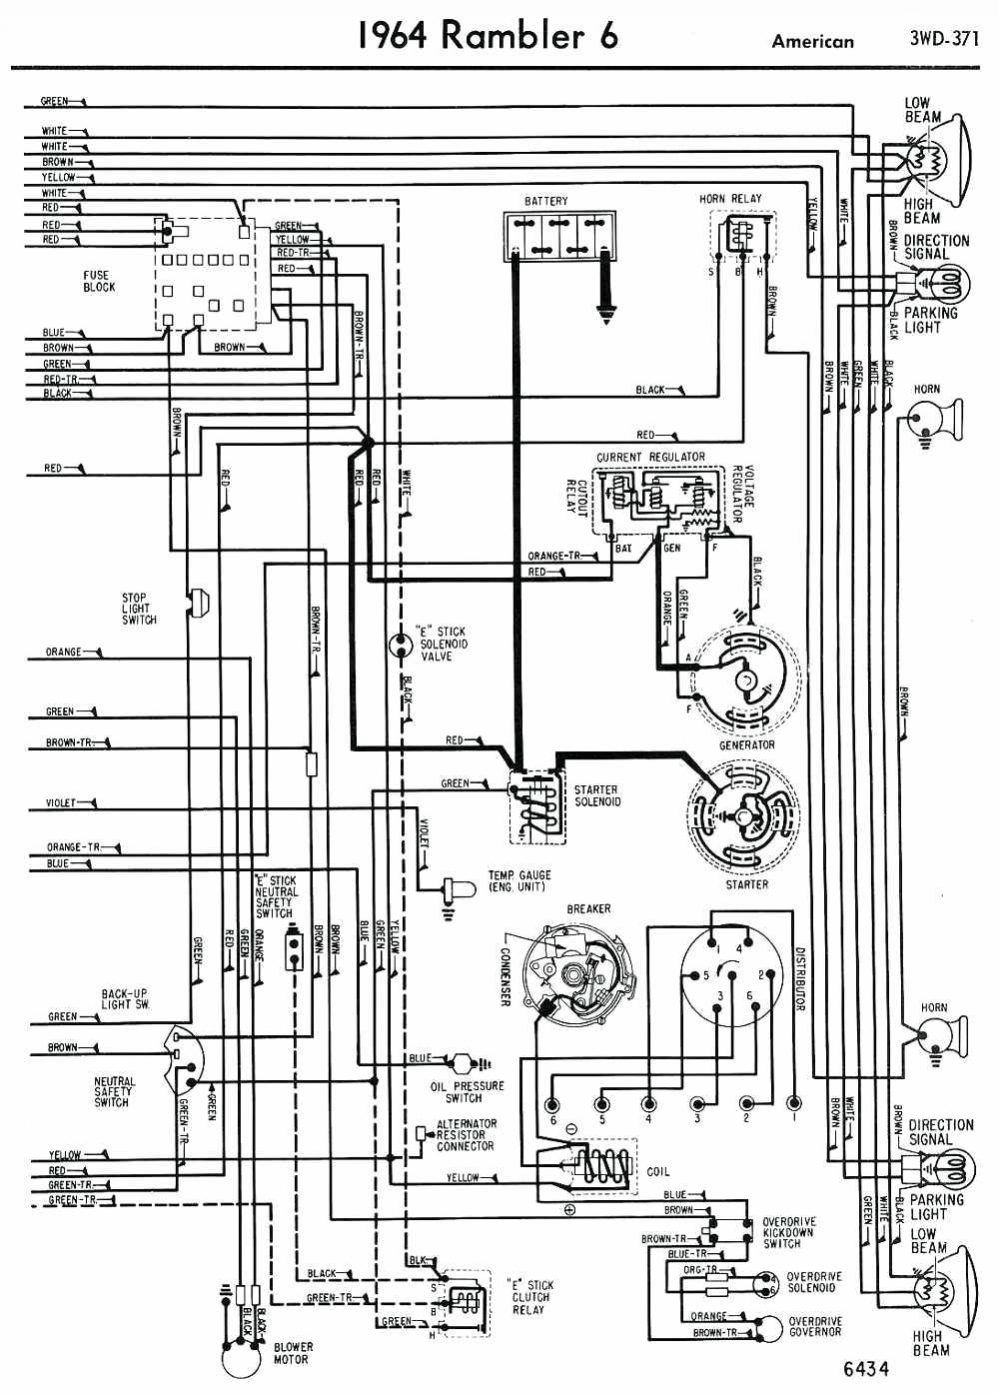 white rodgers 24a01g 3 wiring diagram | free wiring diagram 4 wire thermostat wiring two white wiring diagram white #9